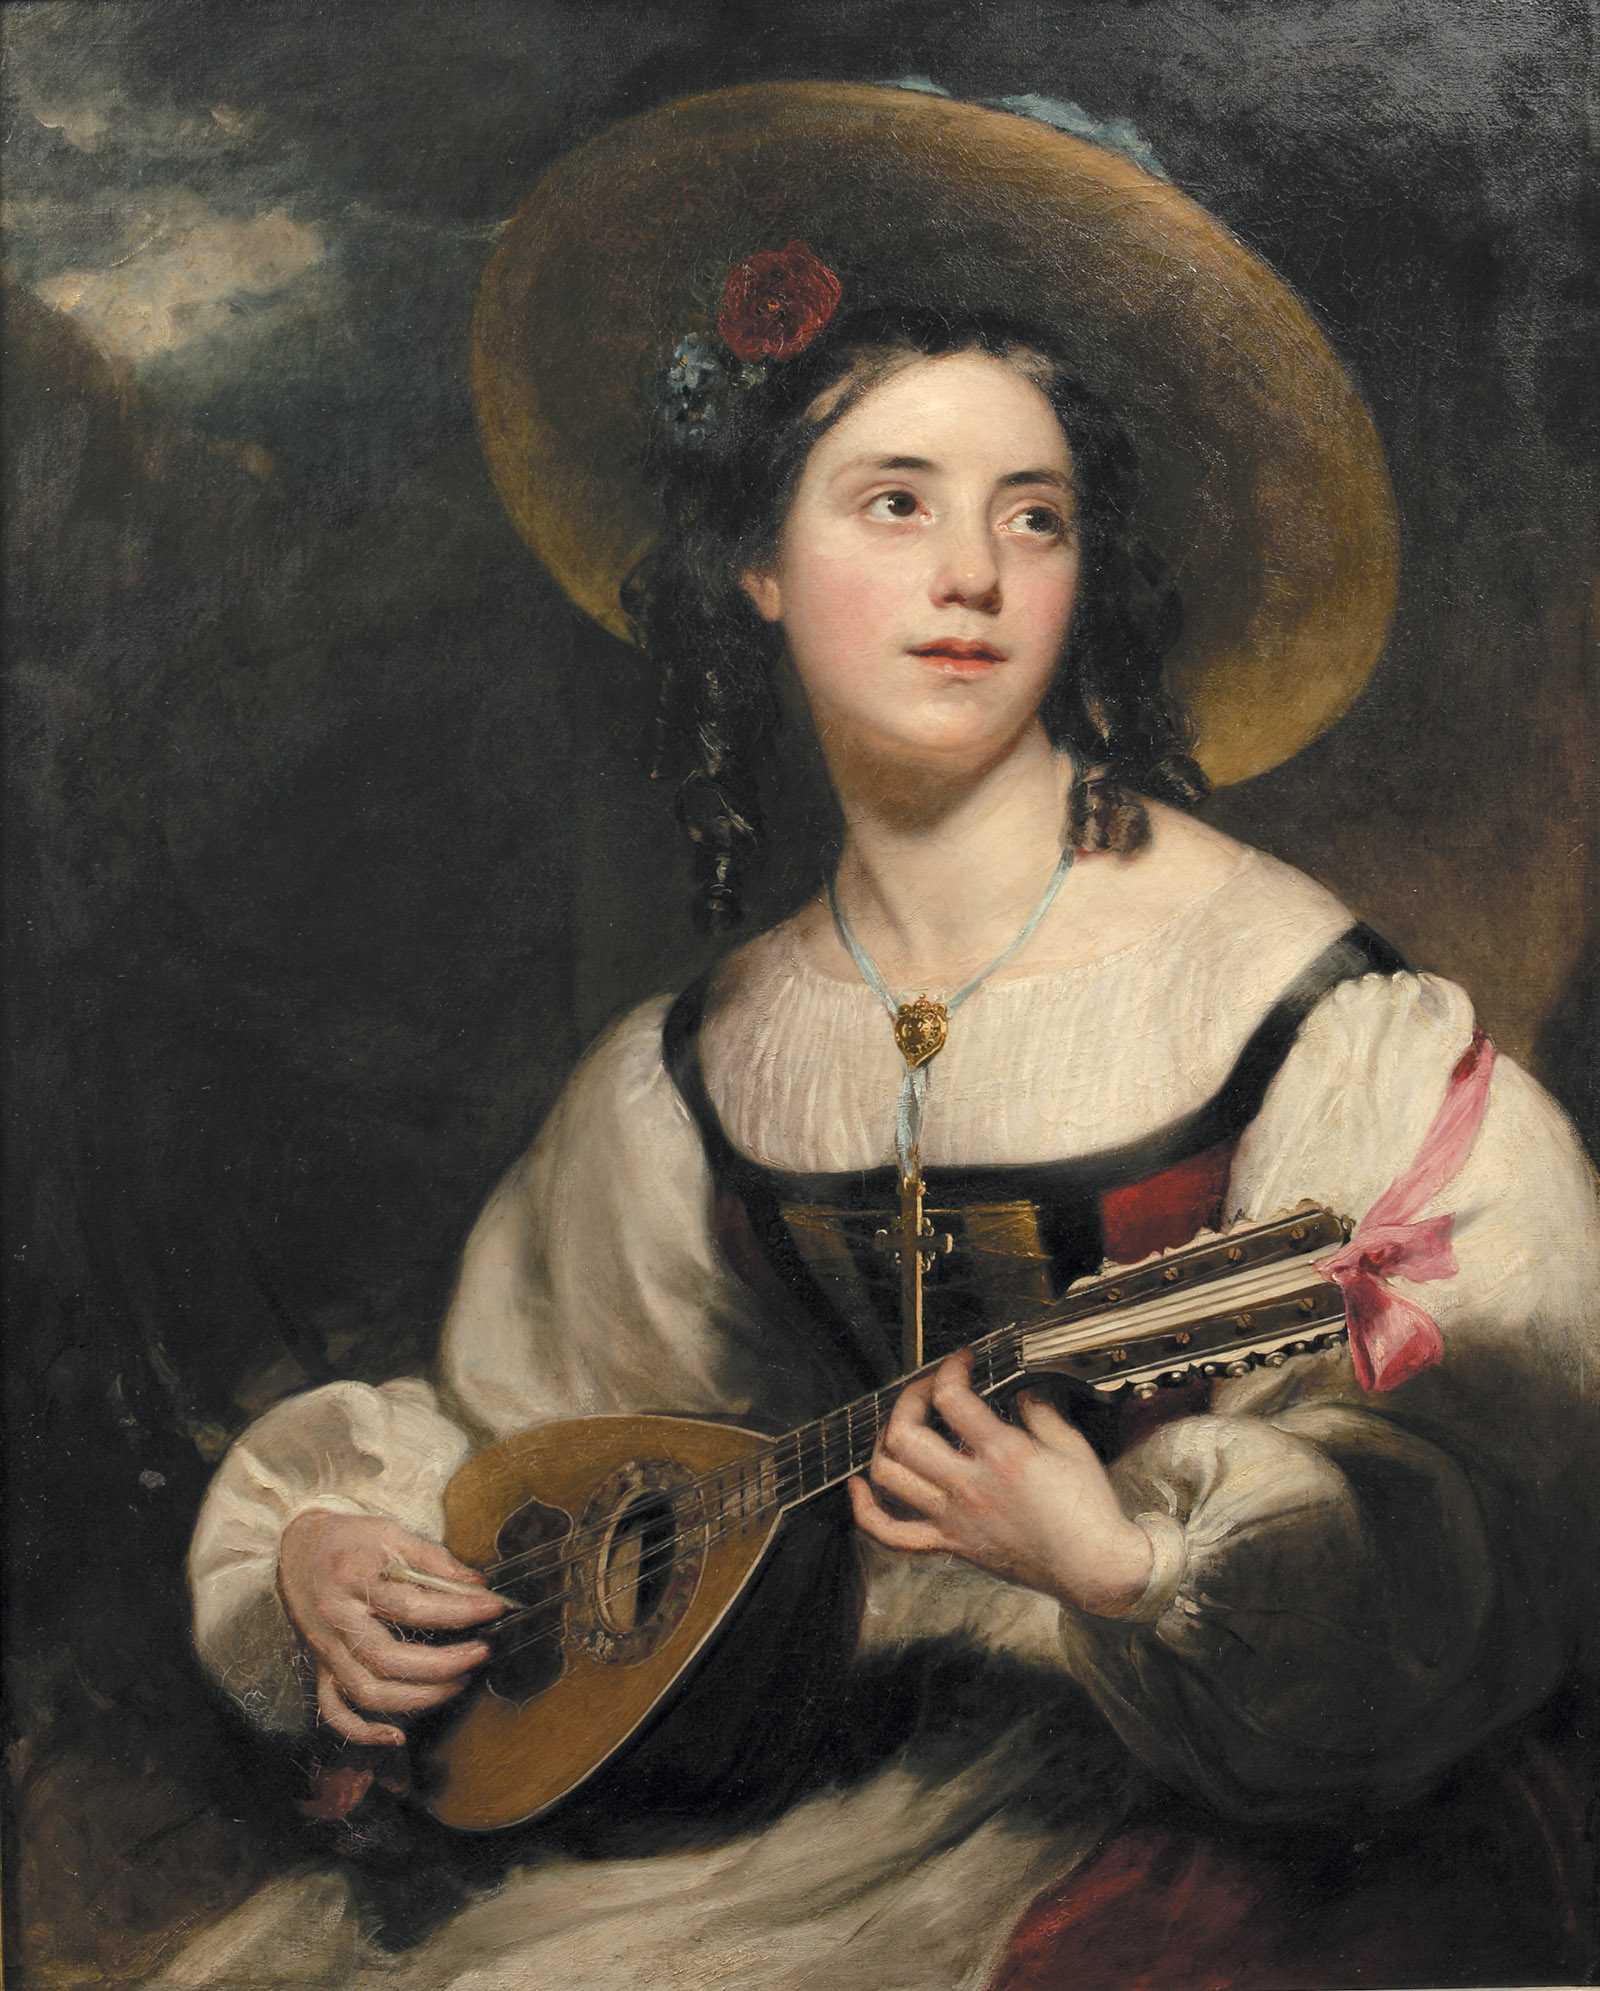 The Minstrel of Chamouni by Henry William Pickersgill